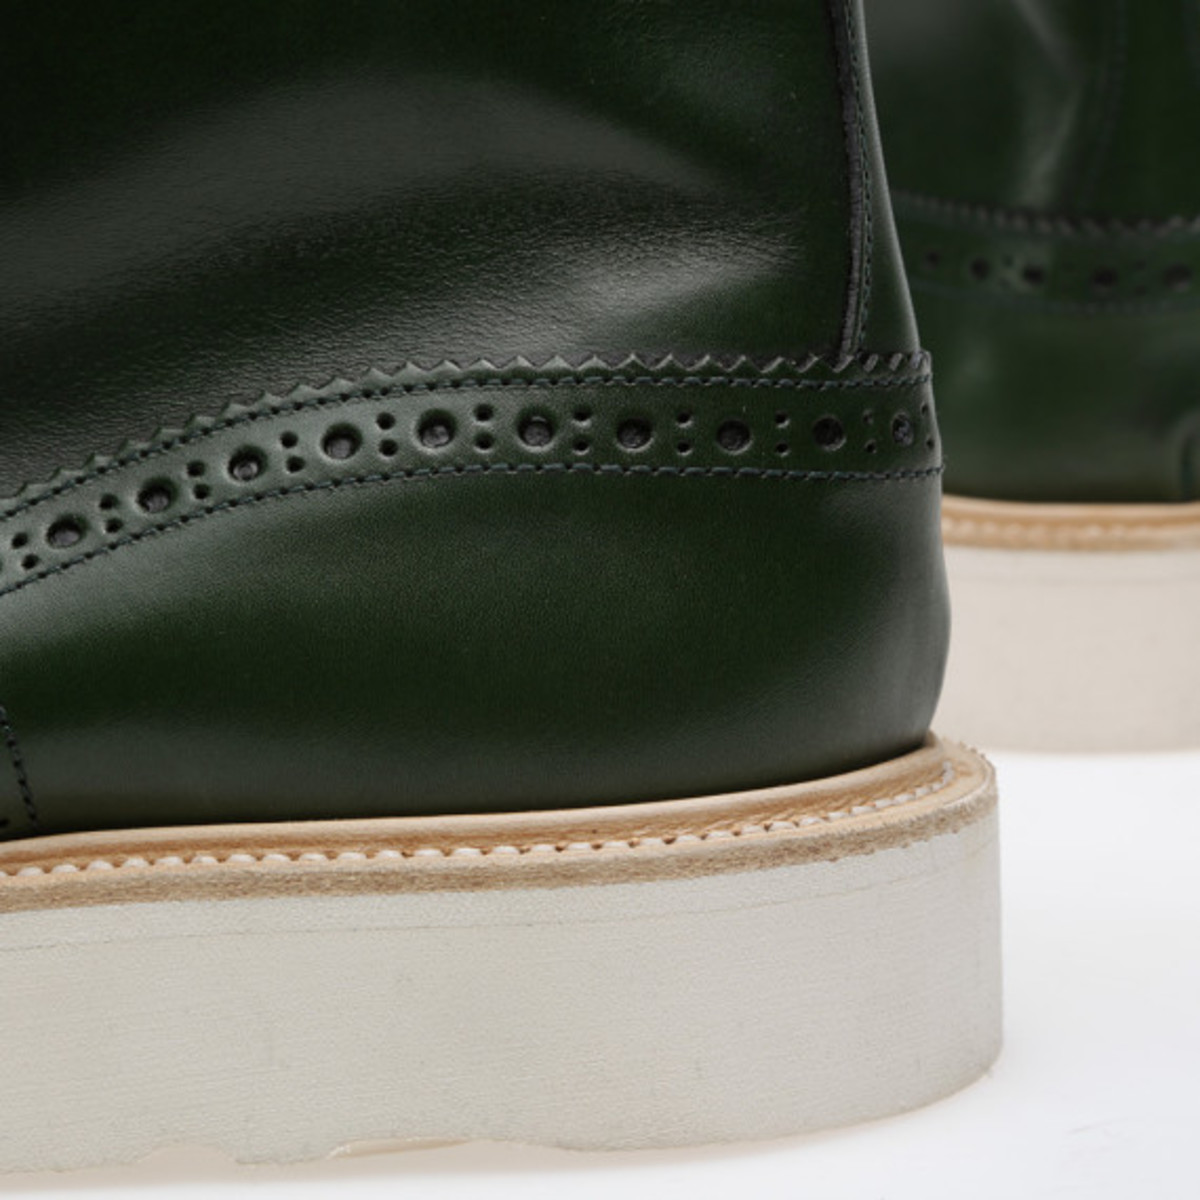 end-trickers-vibram-sole-stow-boot-07